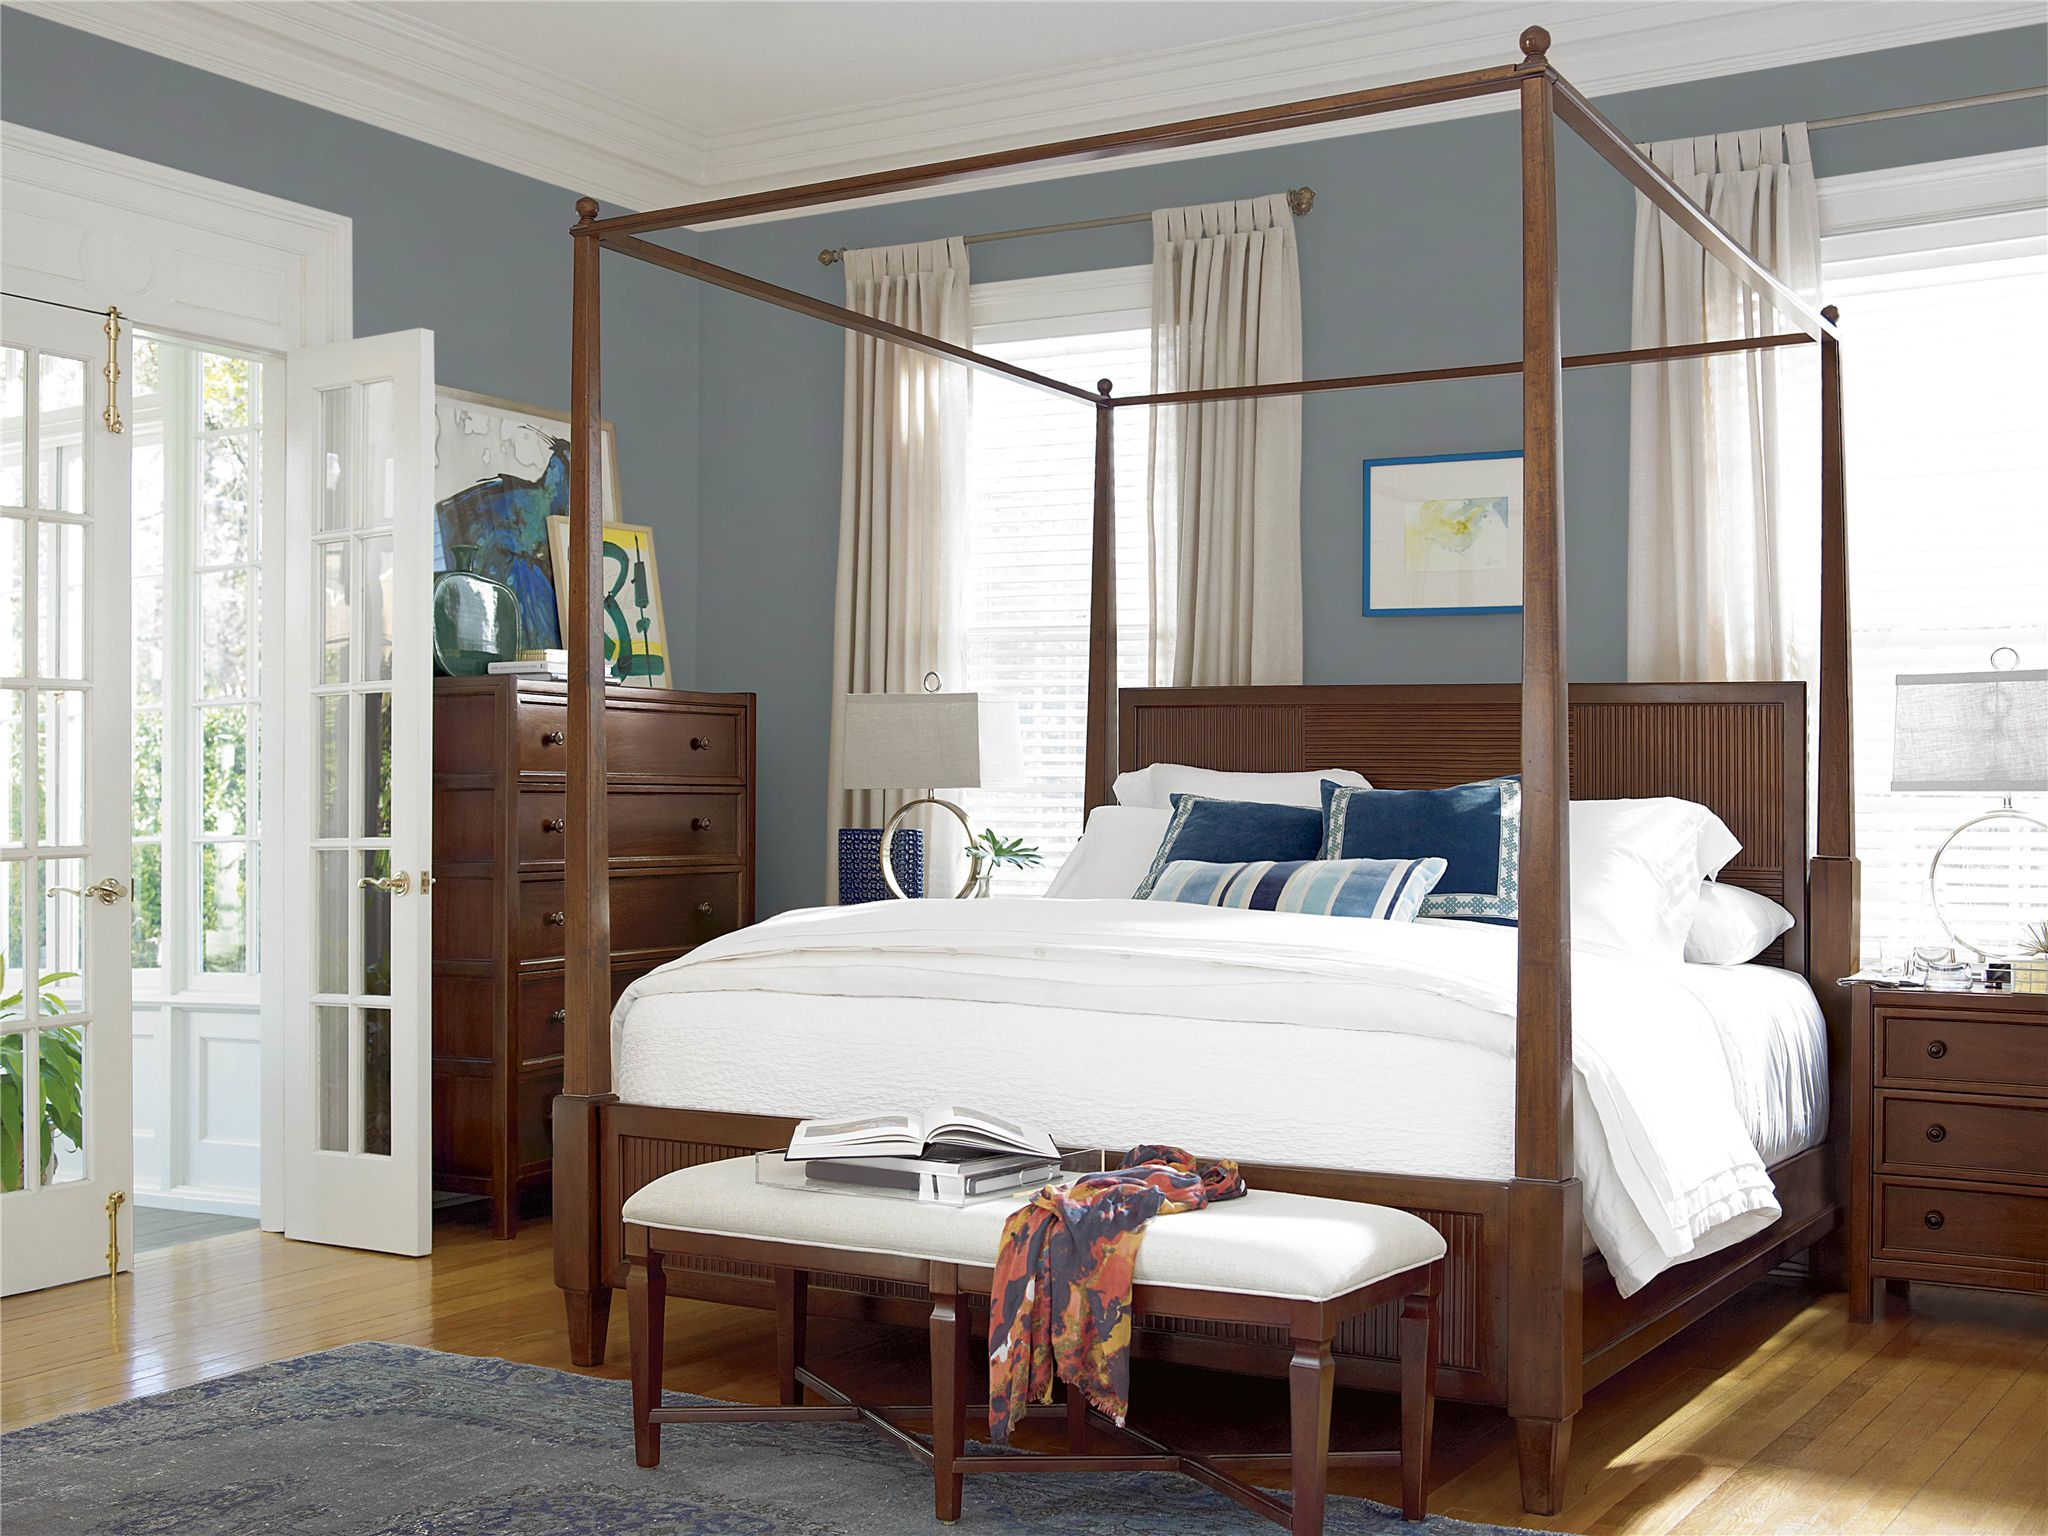 Universal Furniture Silhouette This Four Poster Canopy Bed can